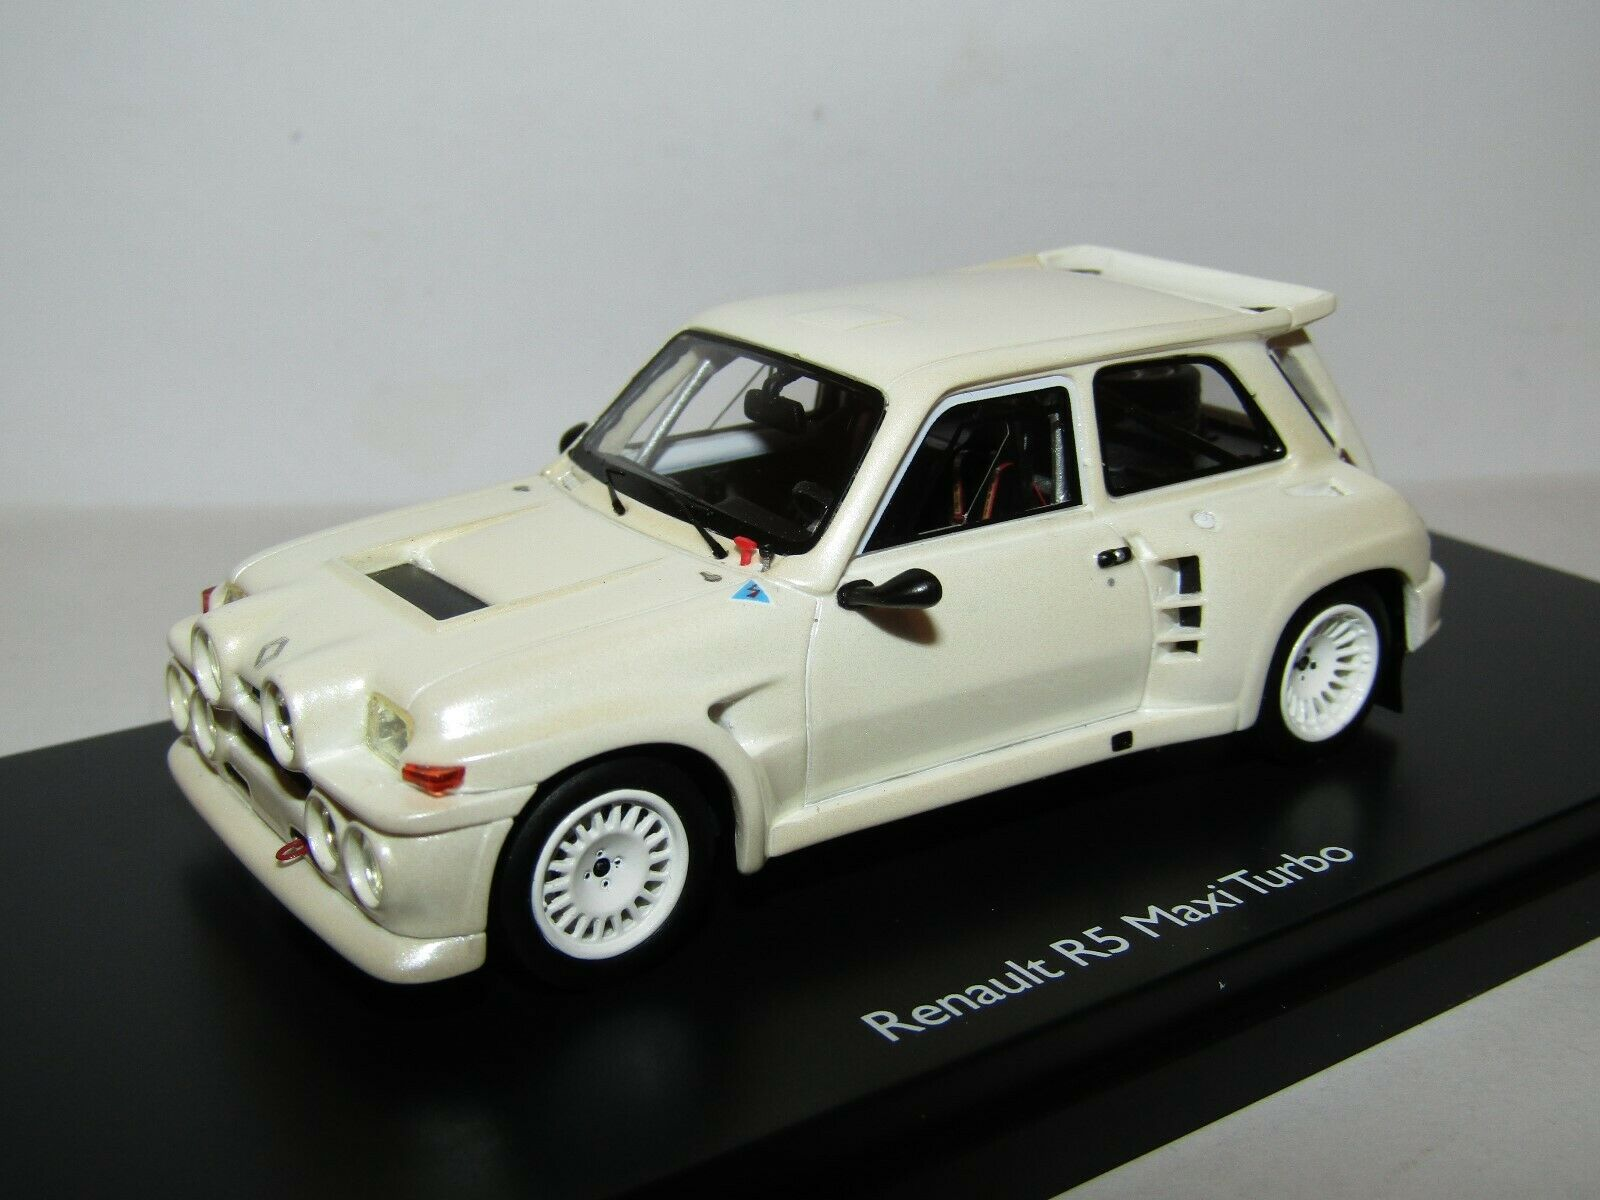 SCHUCO SCHUCO SCHUCO RESIN RENAULT R5 MAXI TURBO PEARL WHITE 1 43 LIMITED EDITION OF 500 408586